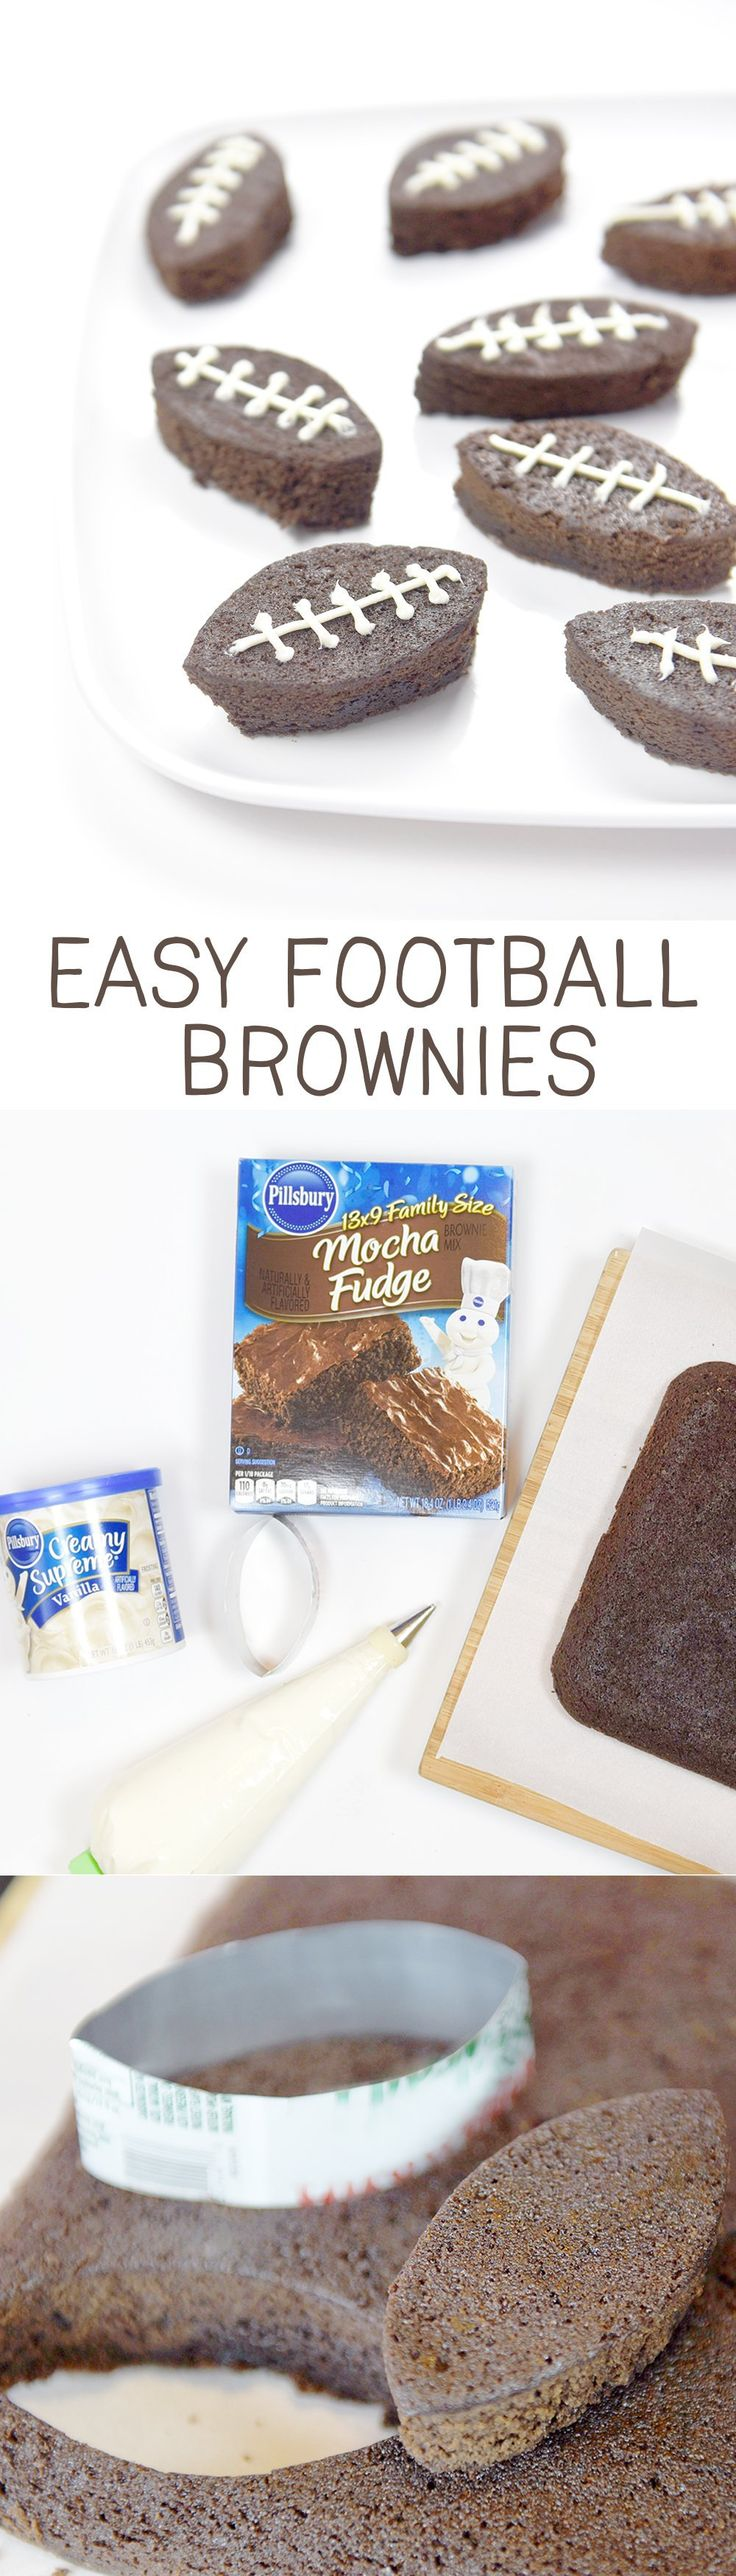 Easy Football Brownies for gameday!!  So cute and easily made with a soda pop can as the cookie cutter! (ad)